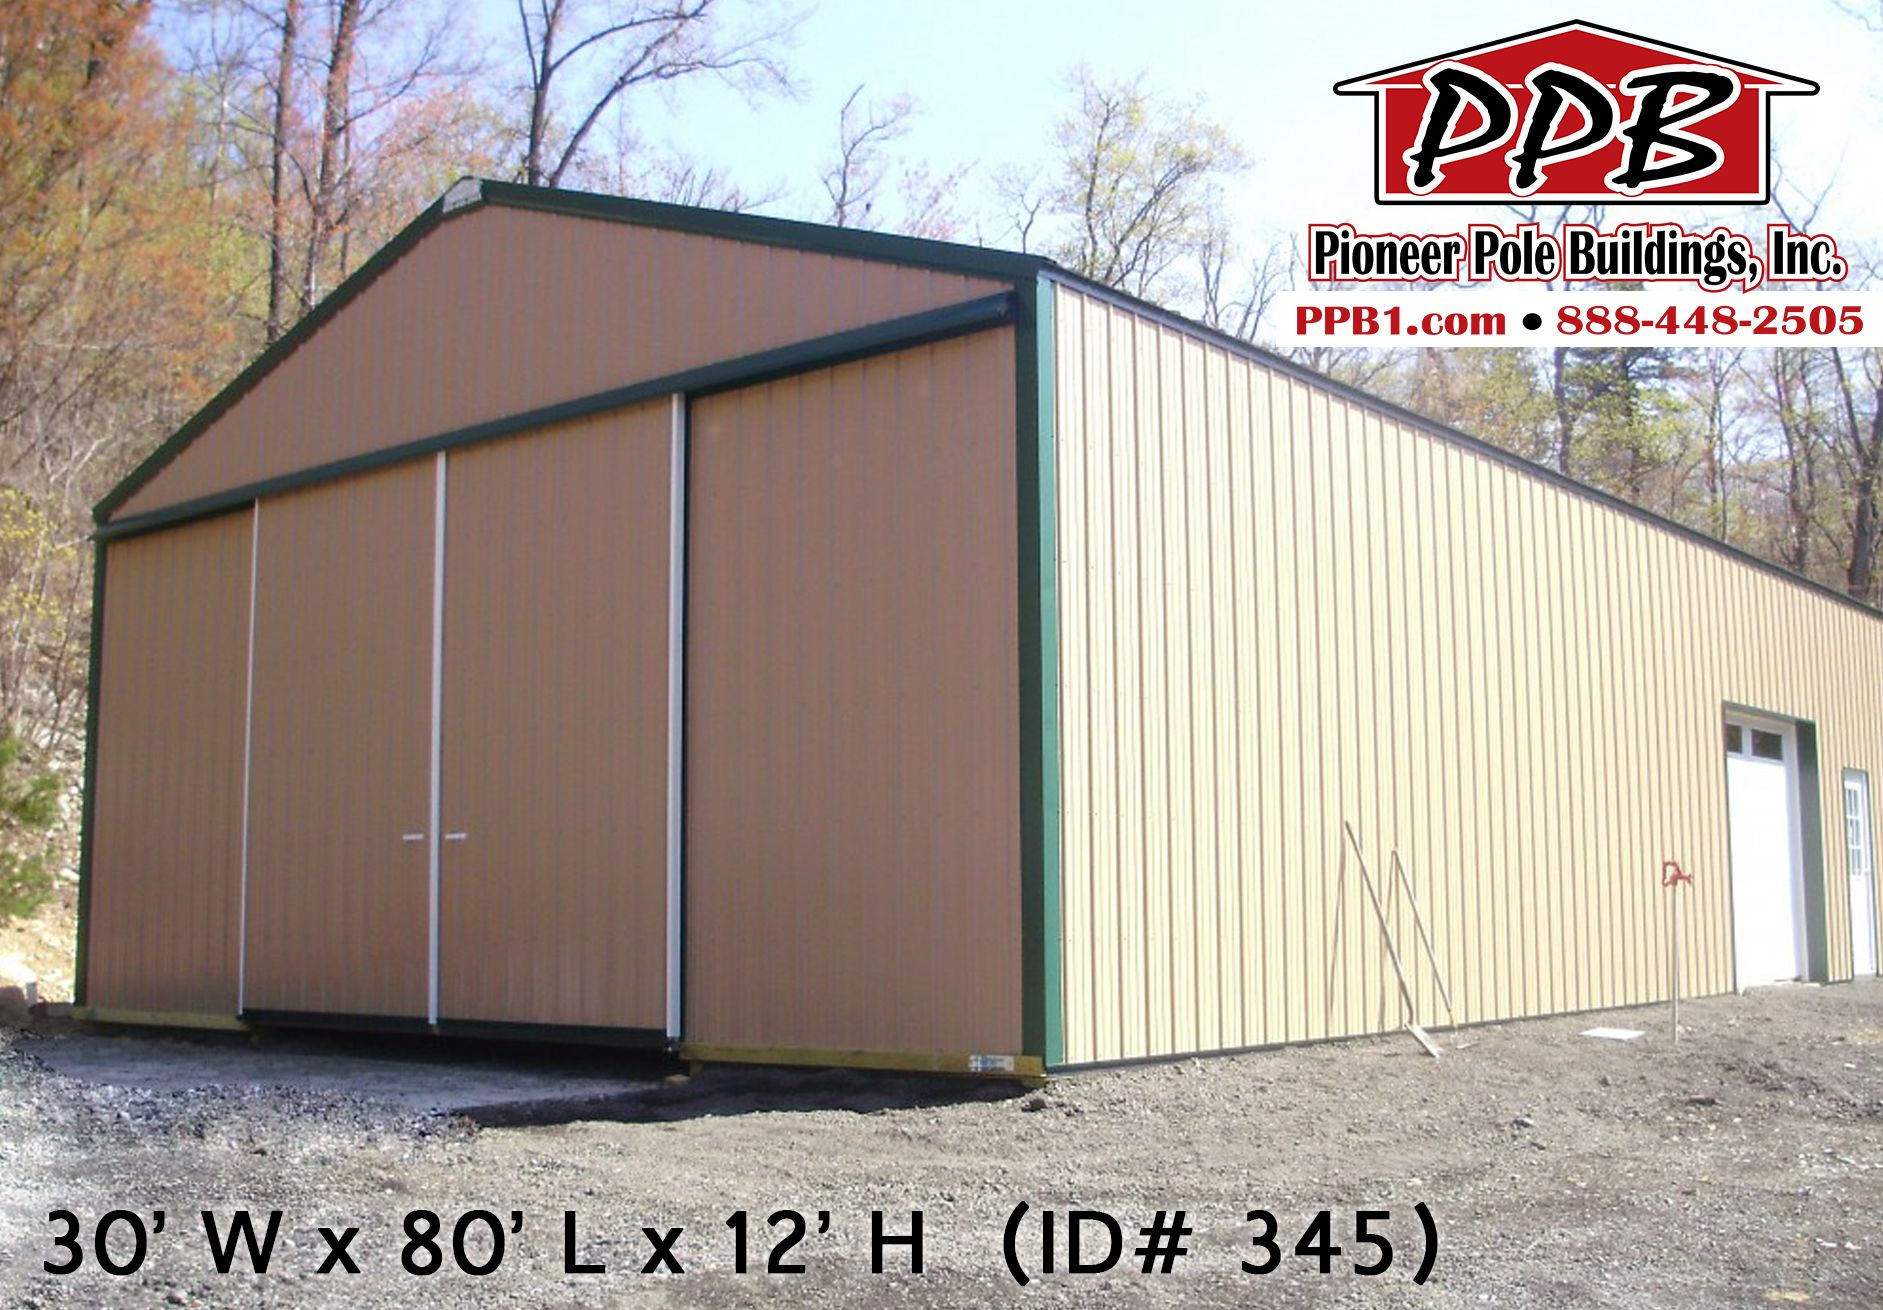 30' W x 80' L x 12' H Agricultural Building (ID 345